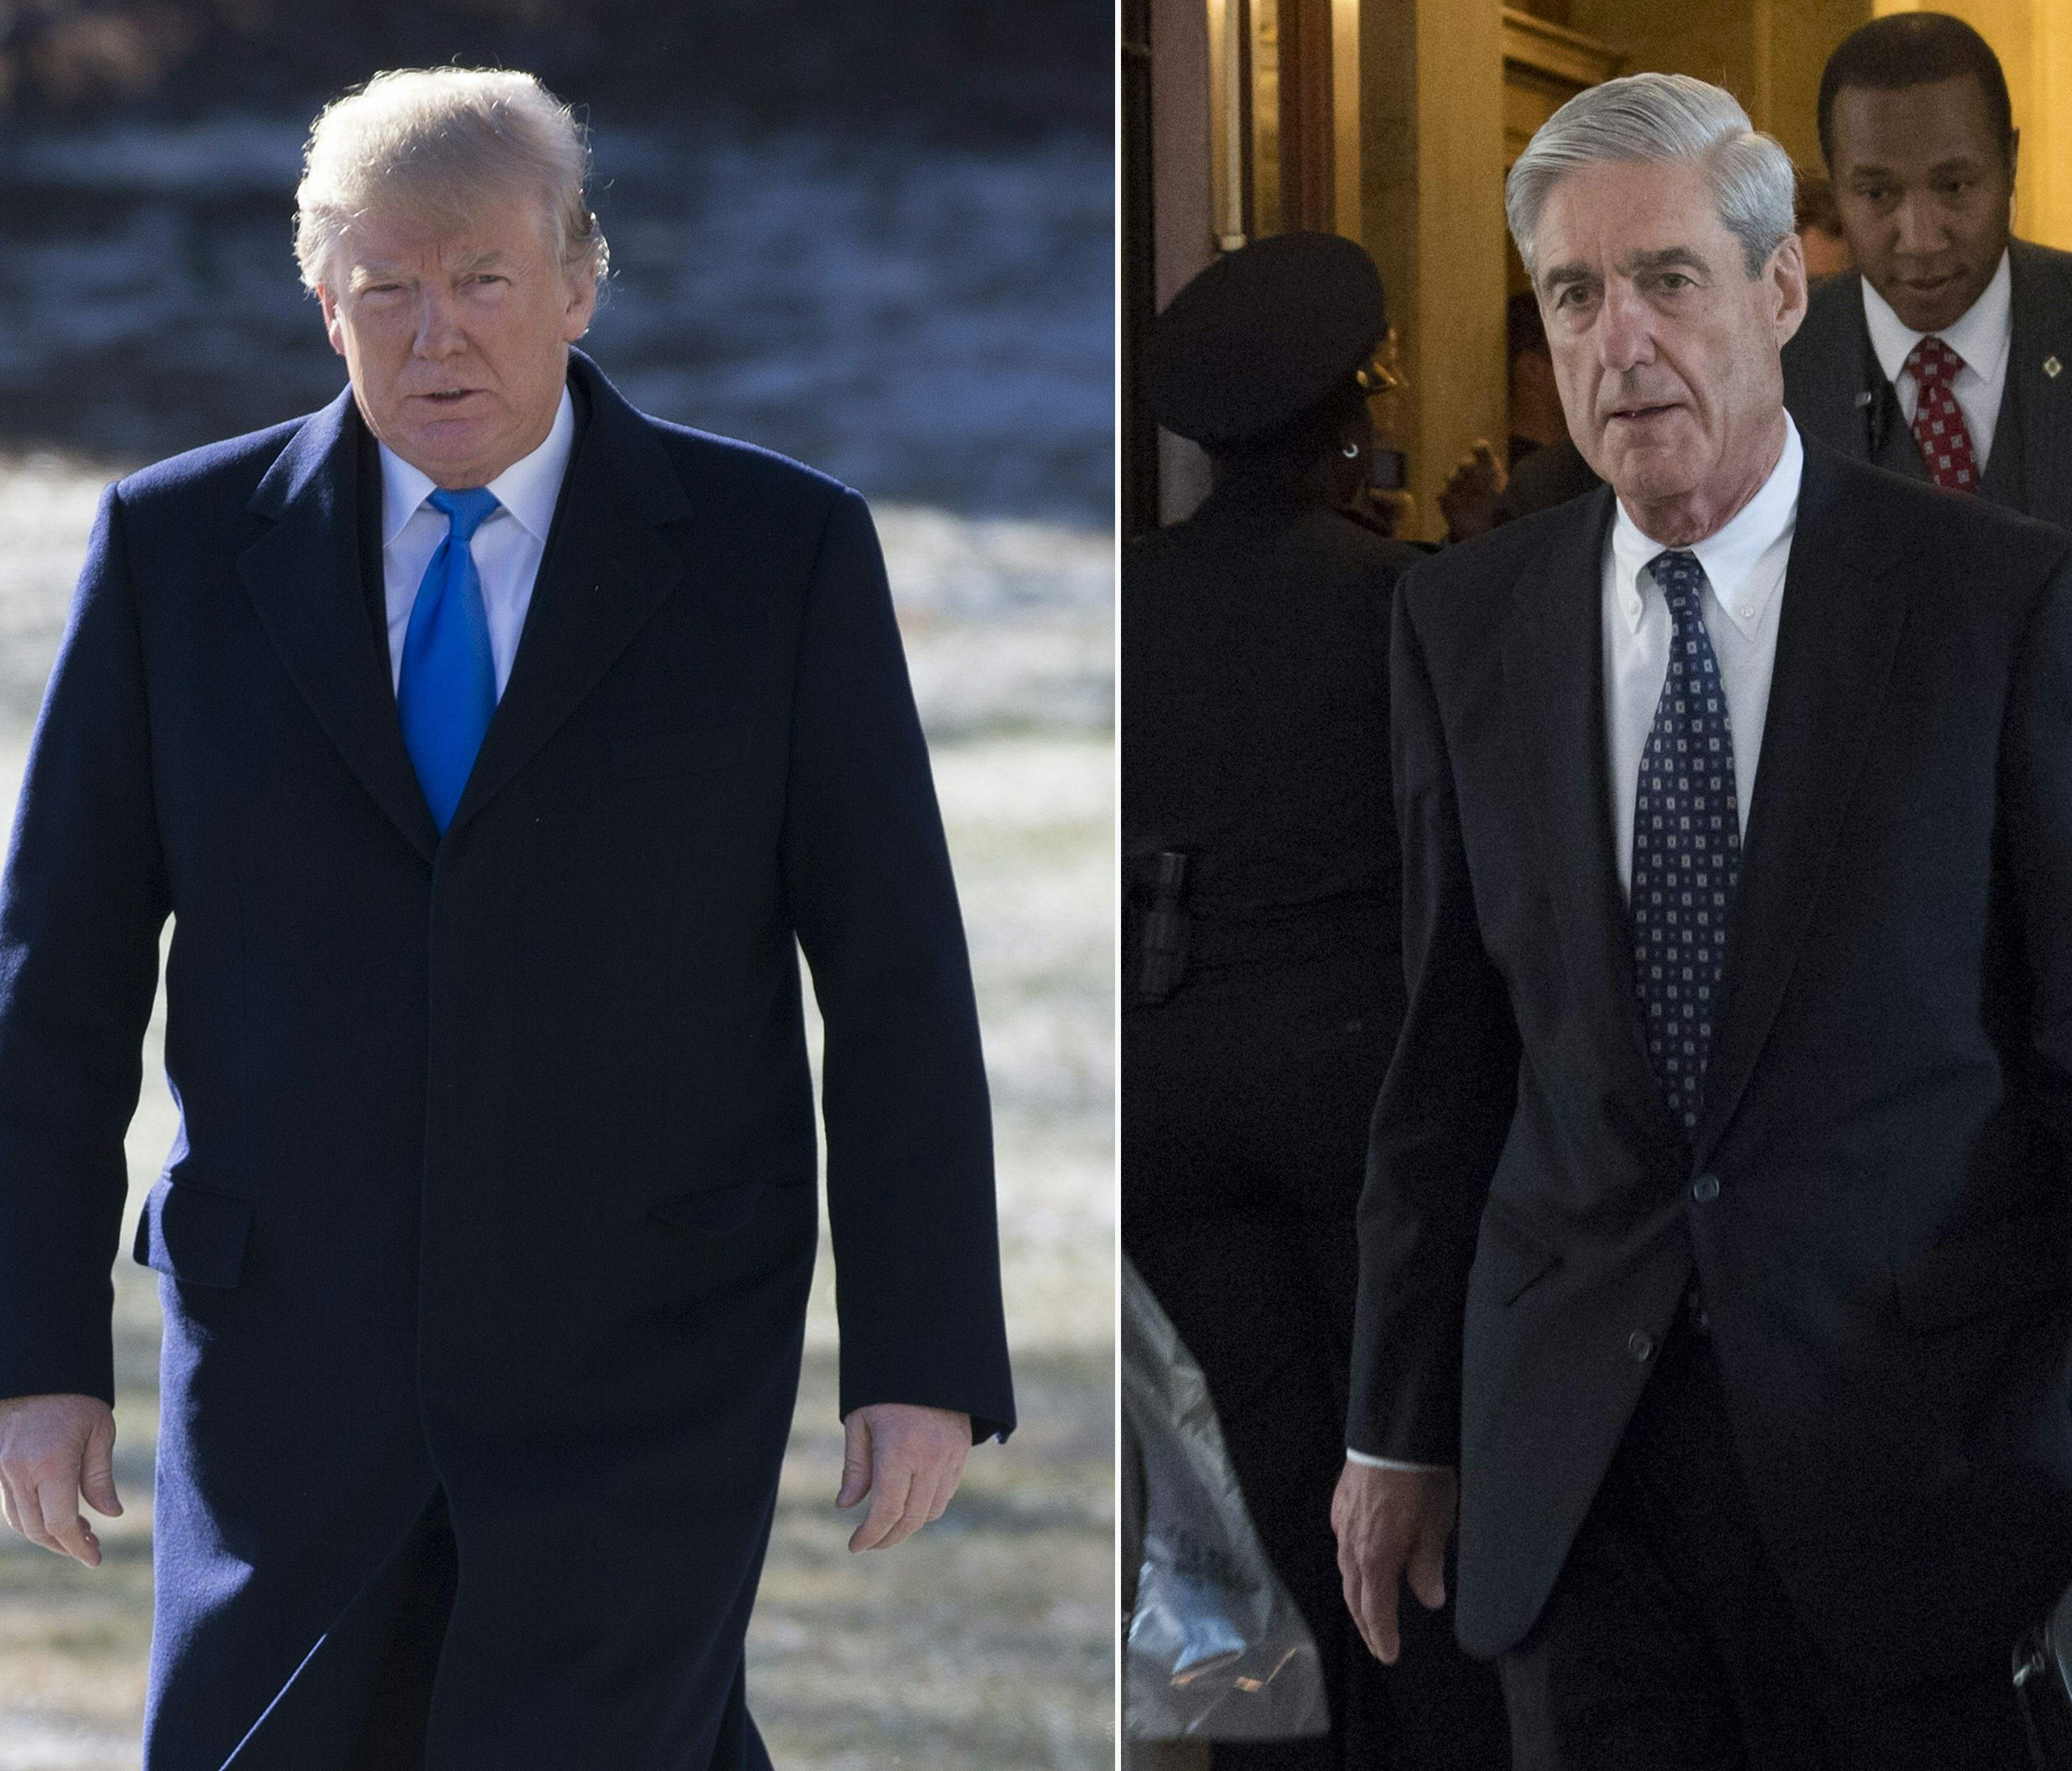 Special counsel Robert Mueller discussed issuing a subpoena for President Trump during a meeting in early March with Trump's lawyers, The Washington Post reported.